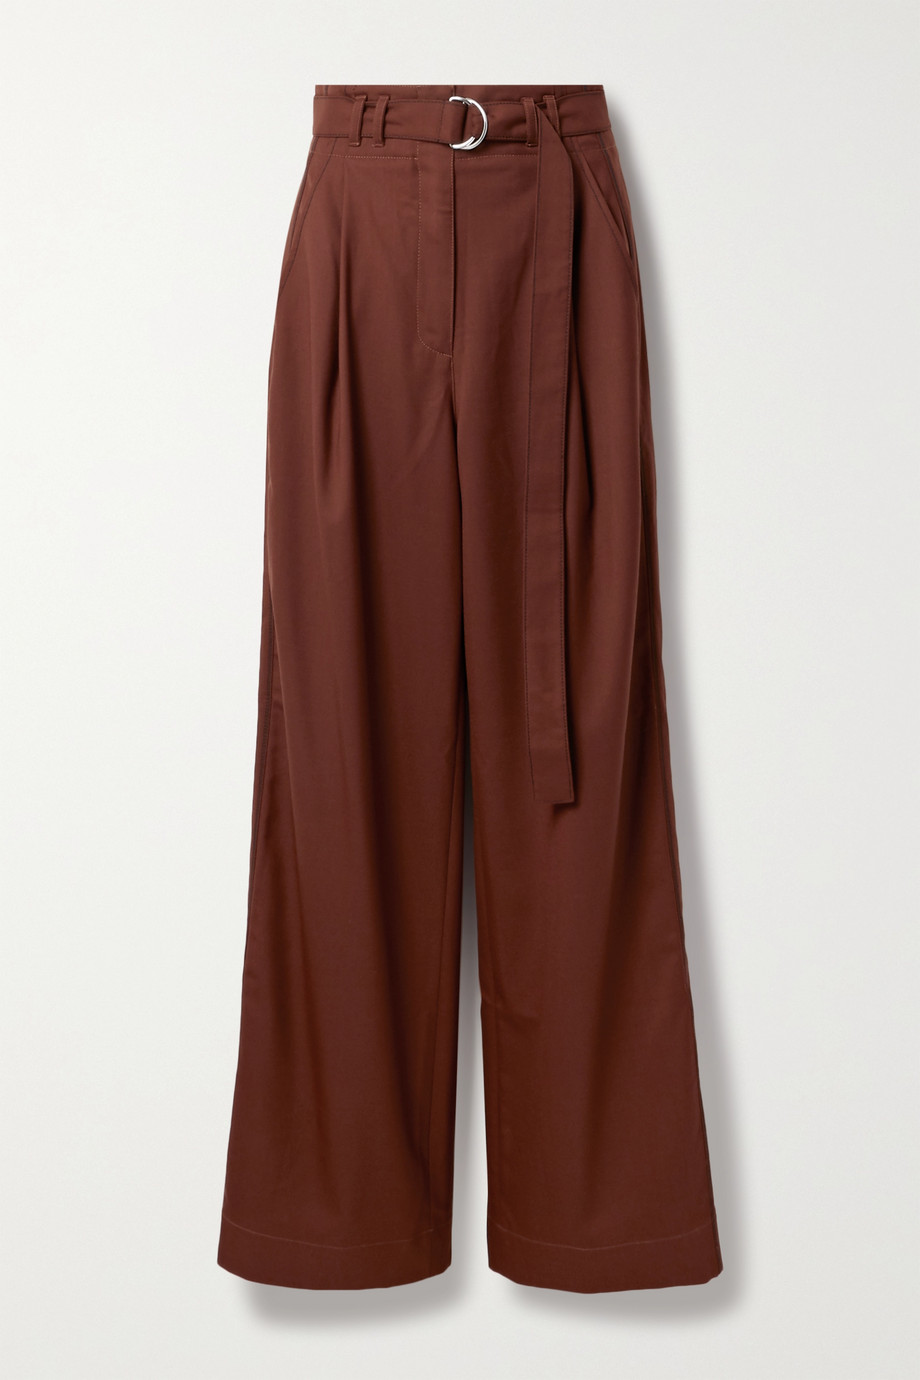 Proenza Schouler White Label Belted pleated twill wide-leg pants